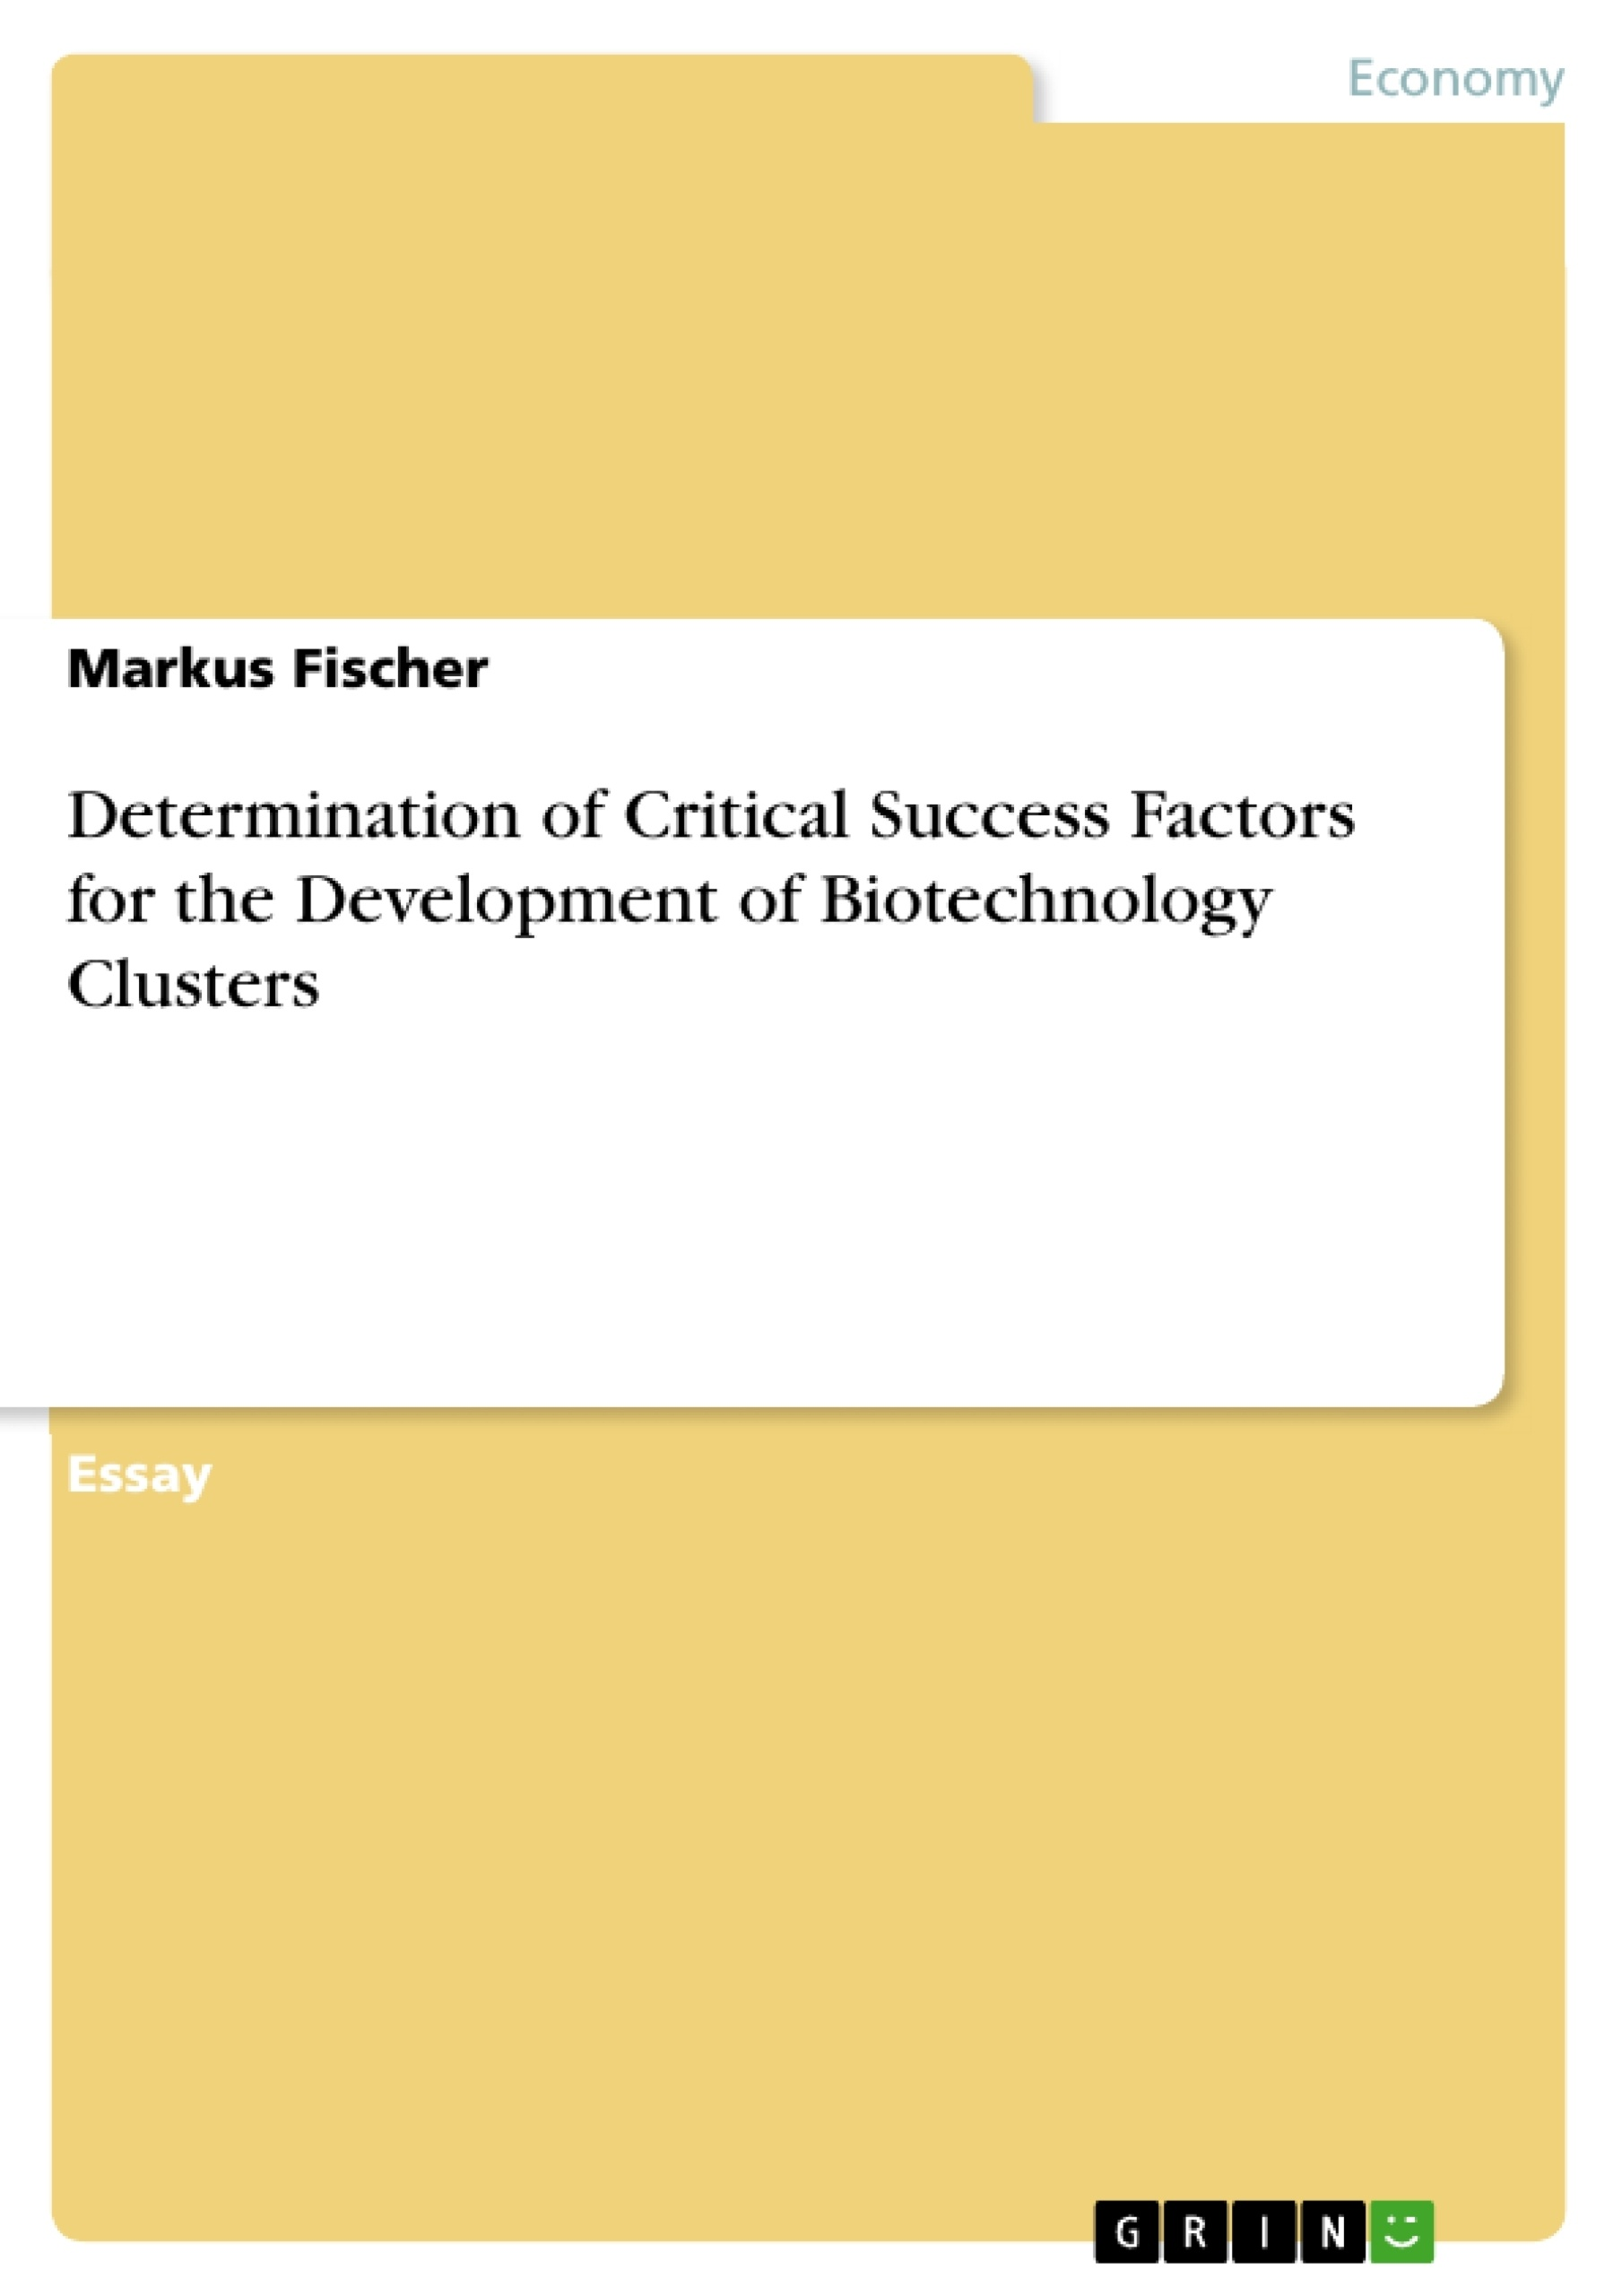 Title: Determination of Critical Success Factors for the Development of Biotechnology Clusters